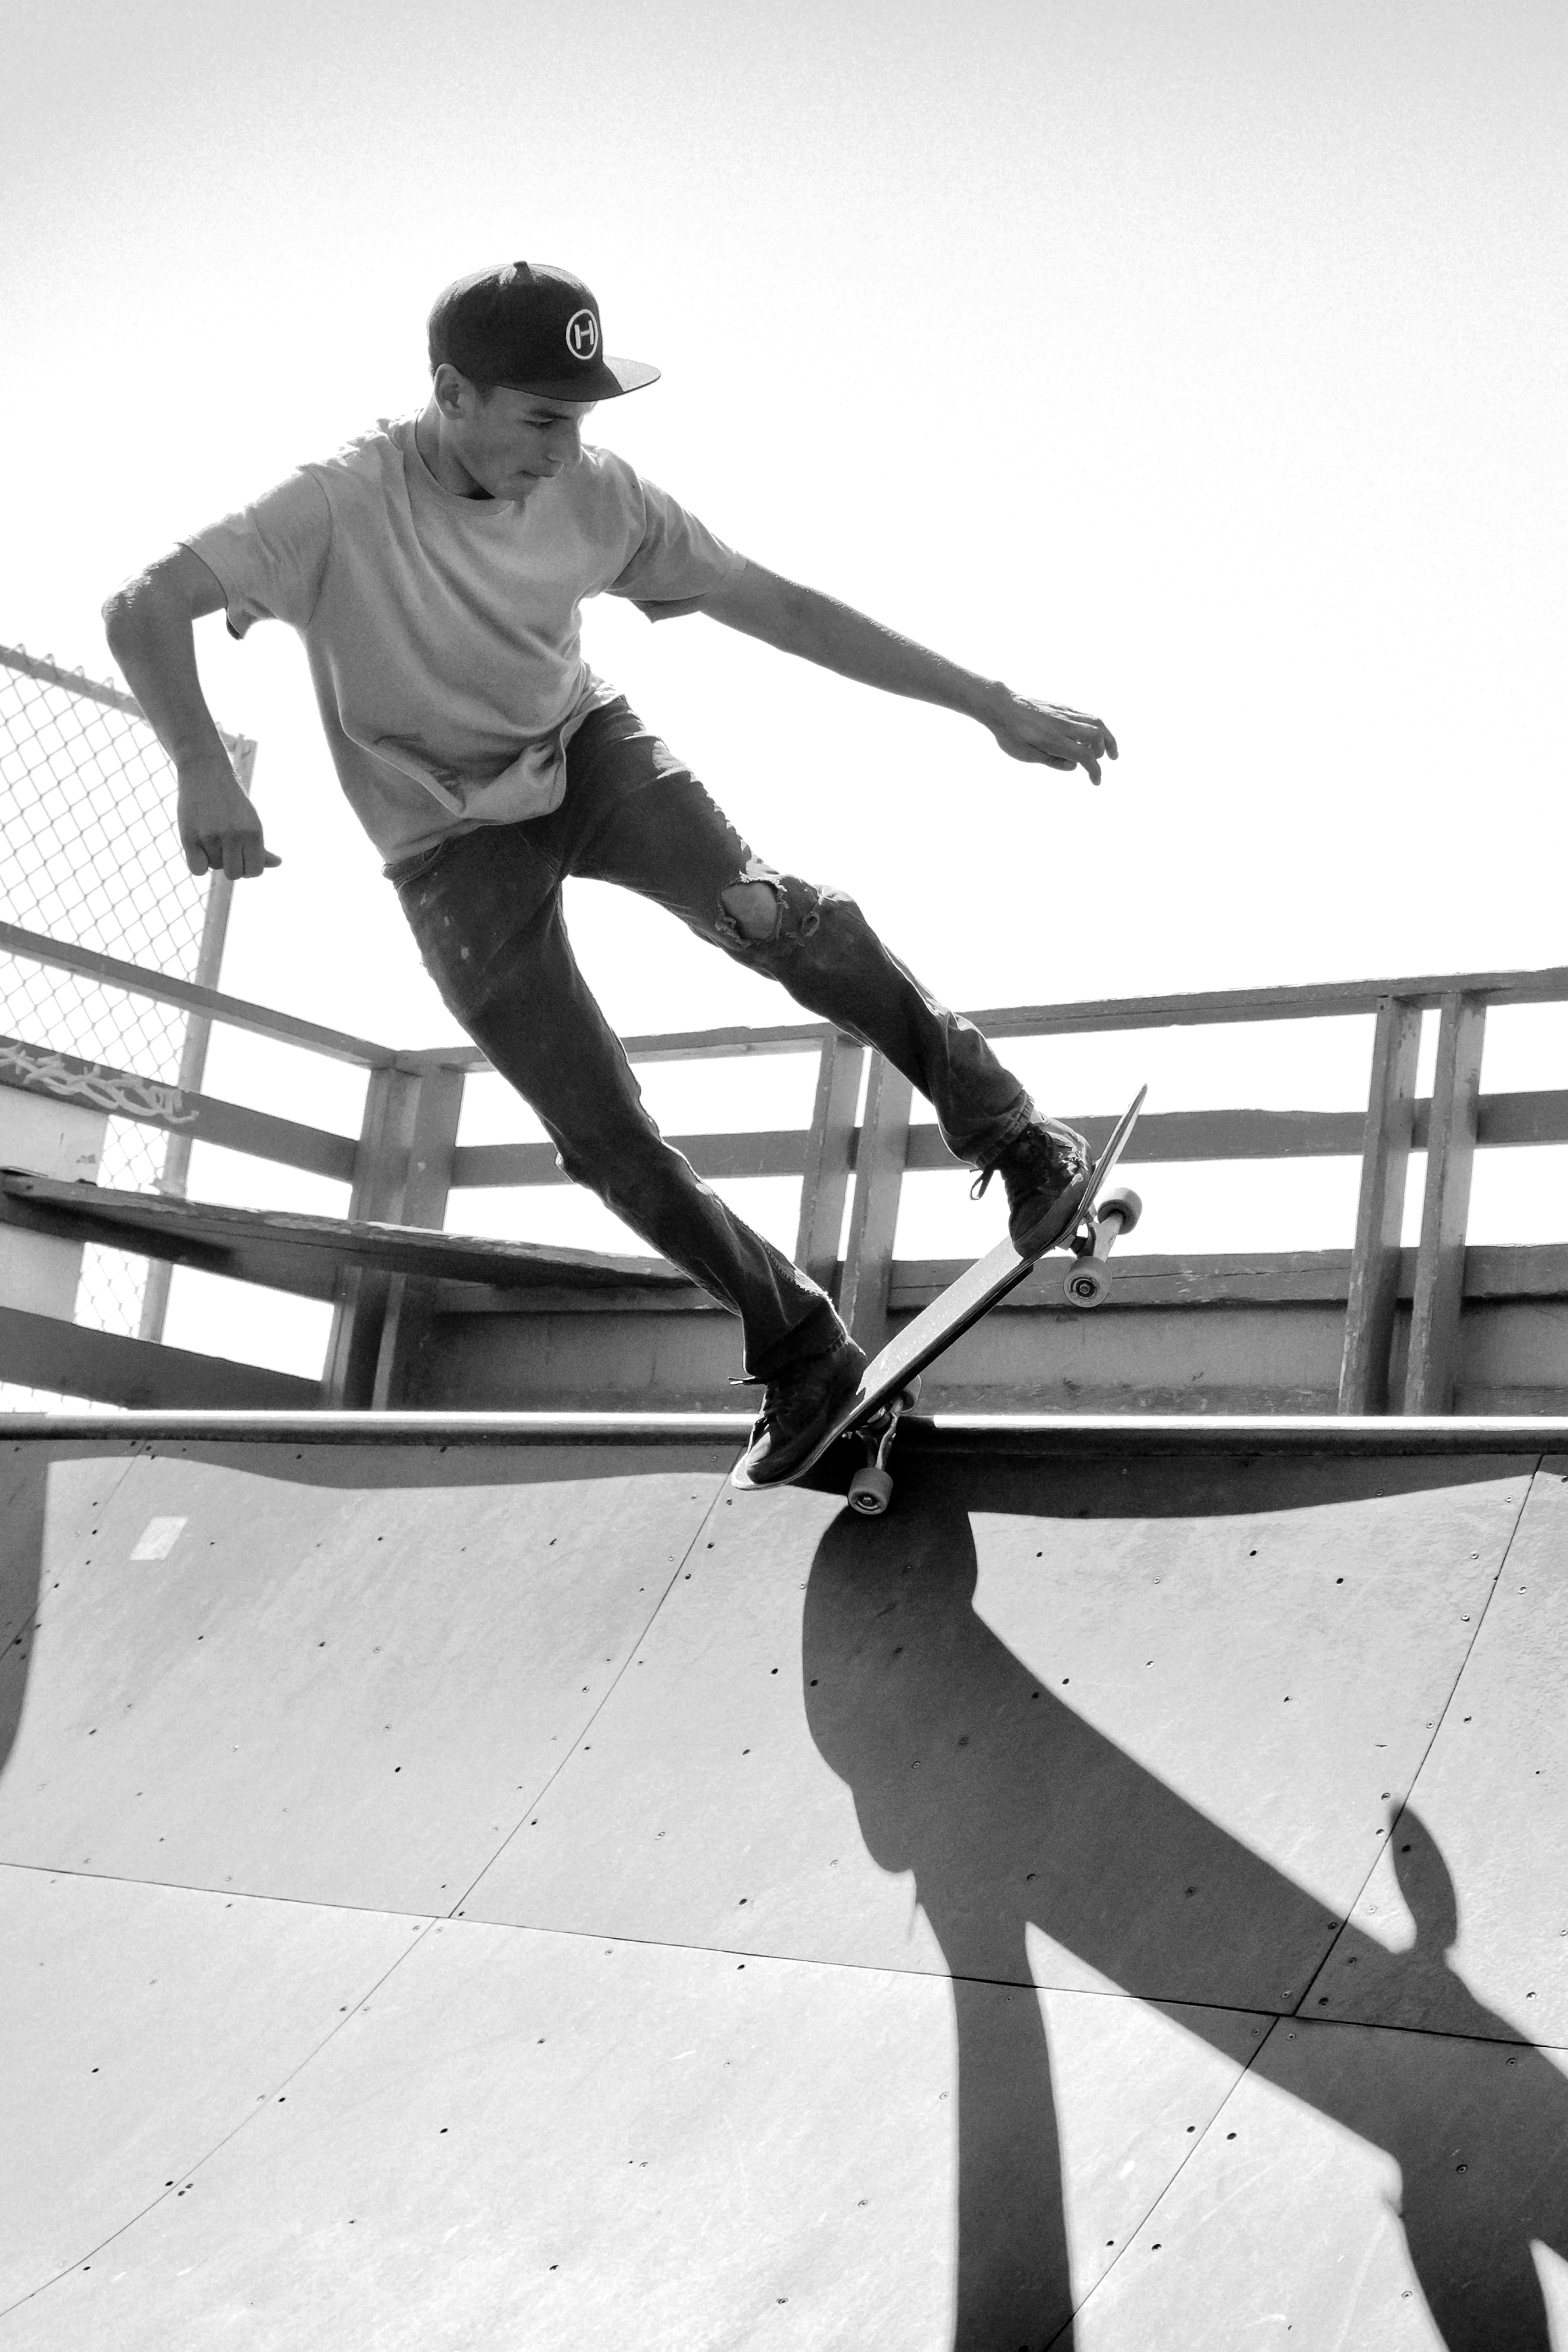 Grayscale Photography of Man Skateboarding on Ramp